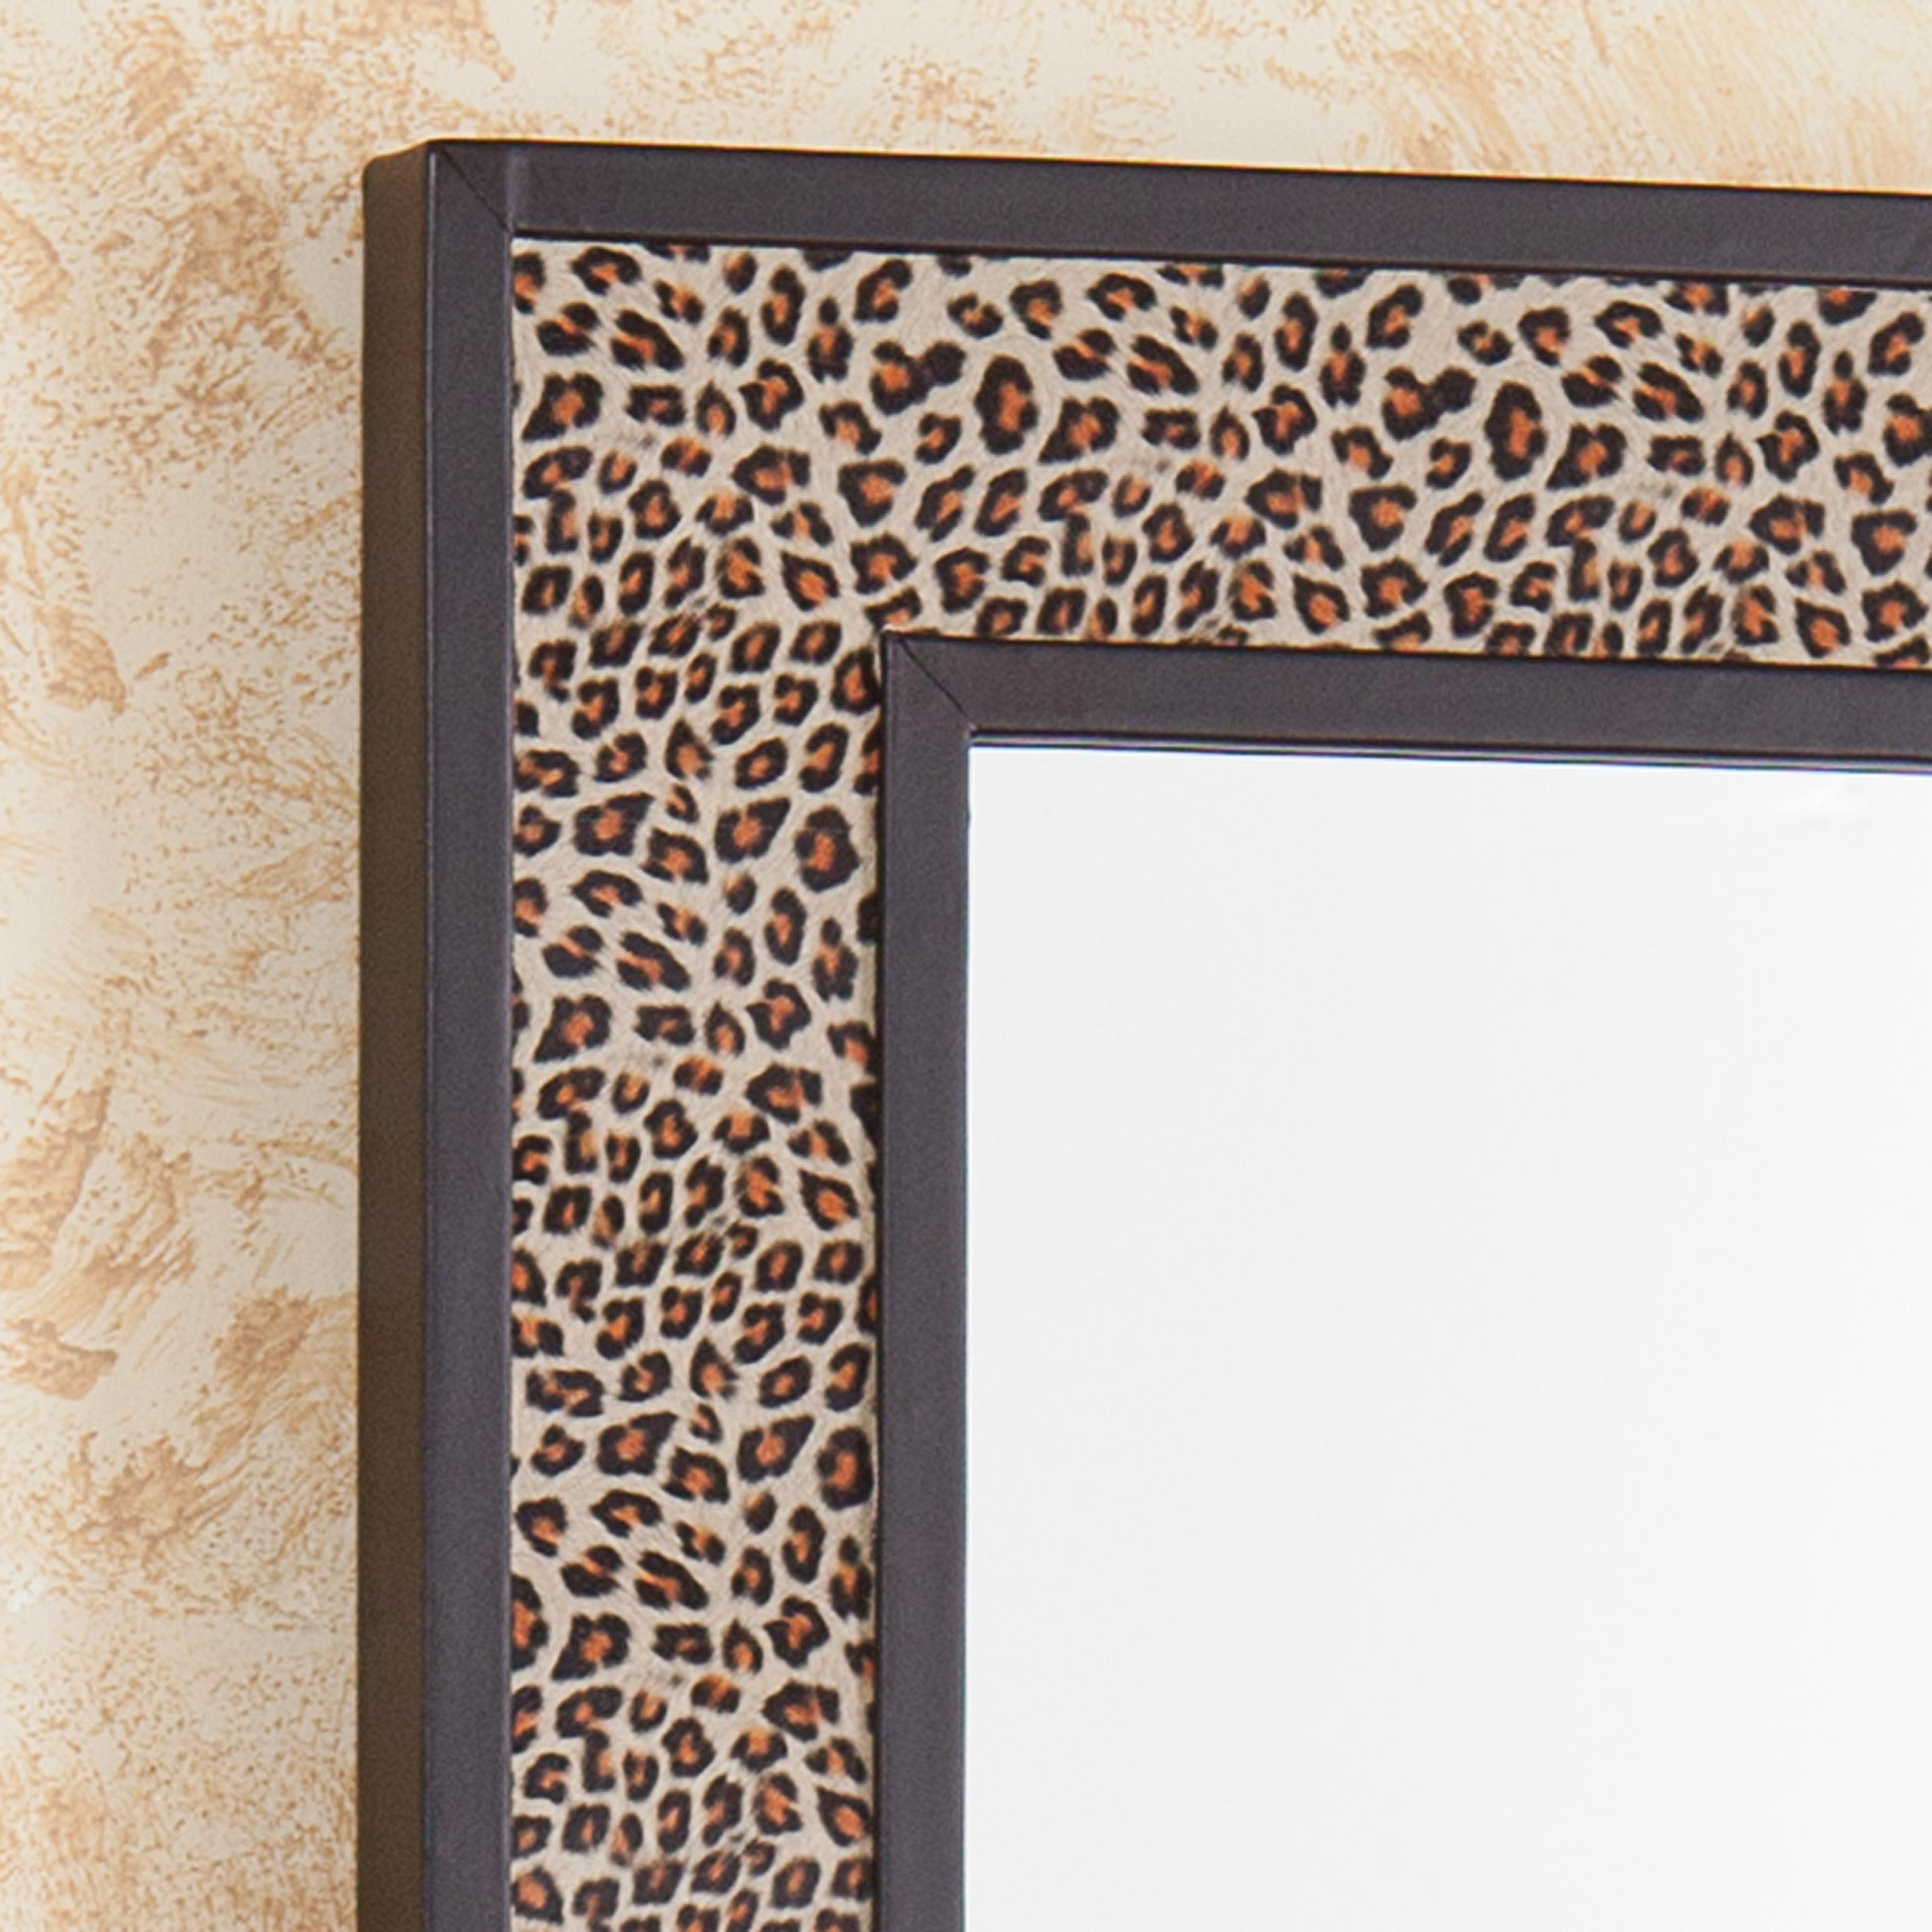 Leopard Wall Mirrors Throughout Well Liked Amazon: Sei Decorative Wall Art Mirror – Leopard Print – Hangs (View 9 of 20)